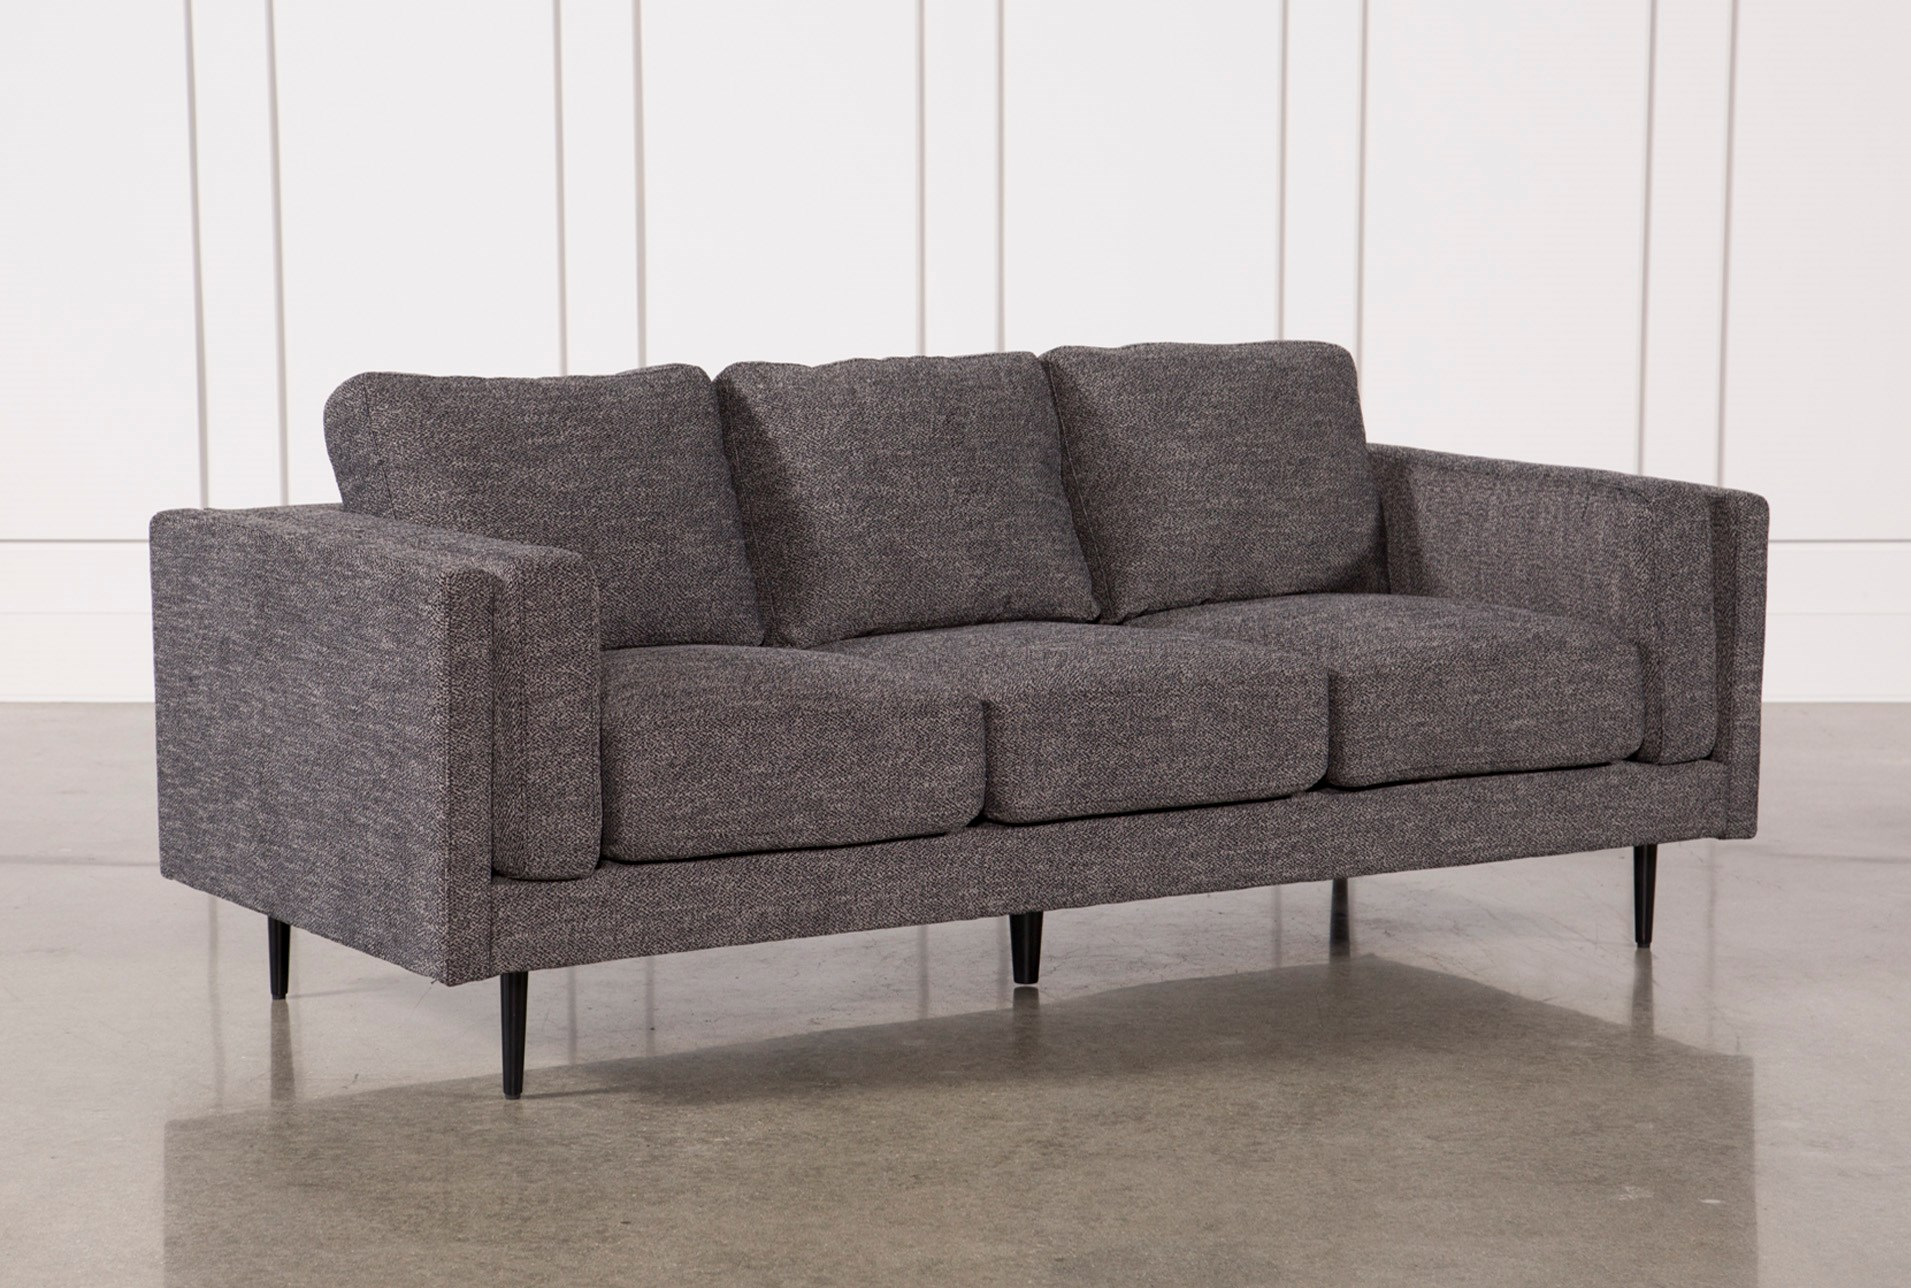 Aquarius Dark Grey Sofa Qty 1 Has Been Successfully Added To Your Cart